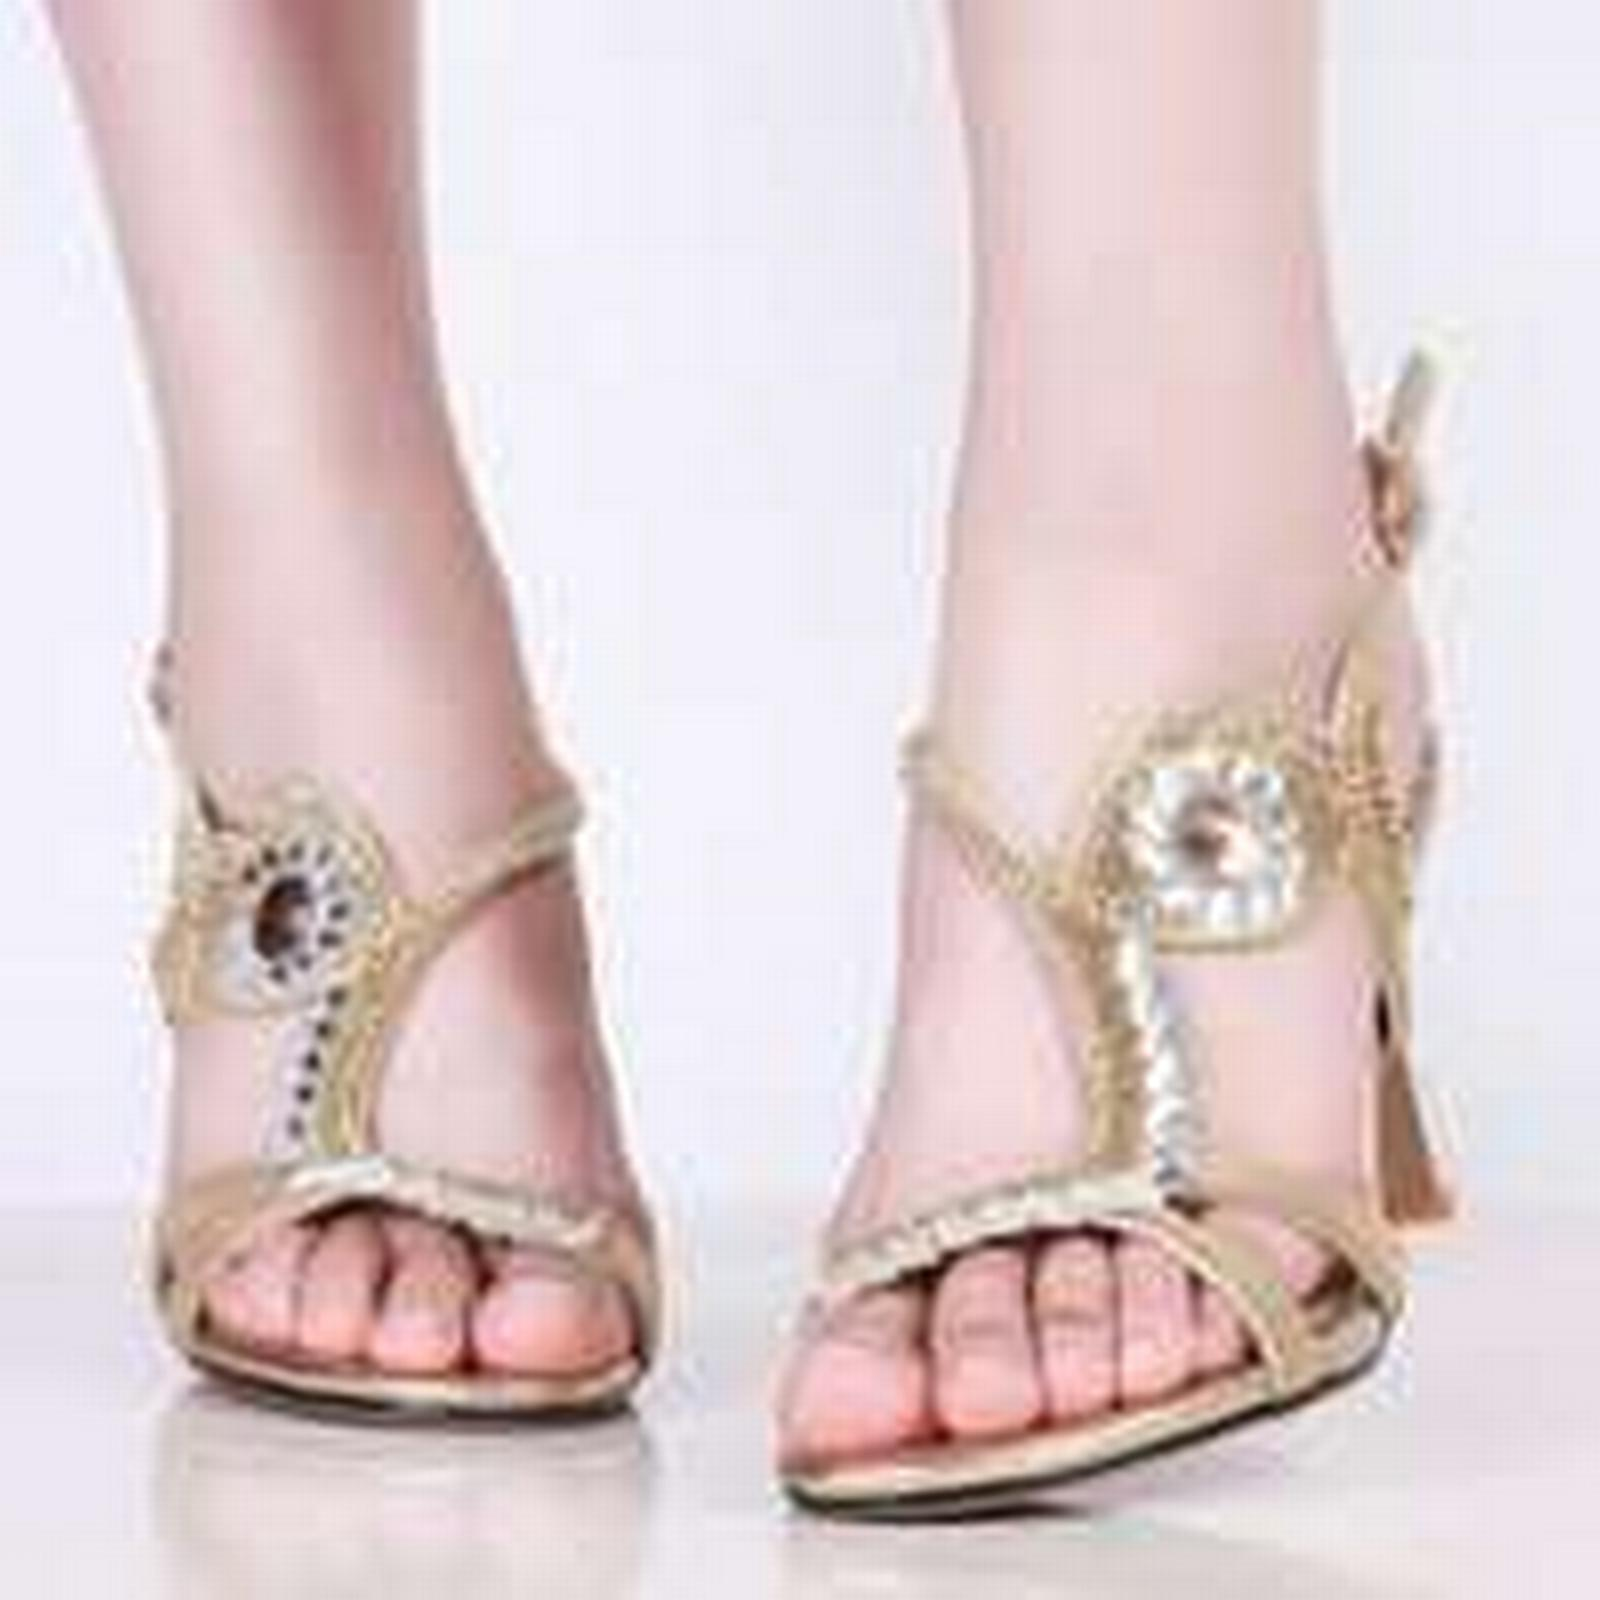 Bonanza (Global) PS058 size elegant genuine leather rhinestones ankle sandals, size PS058 34-39, silver b7203b